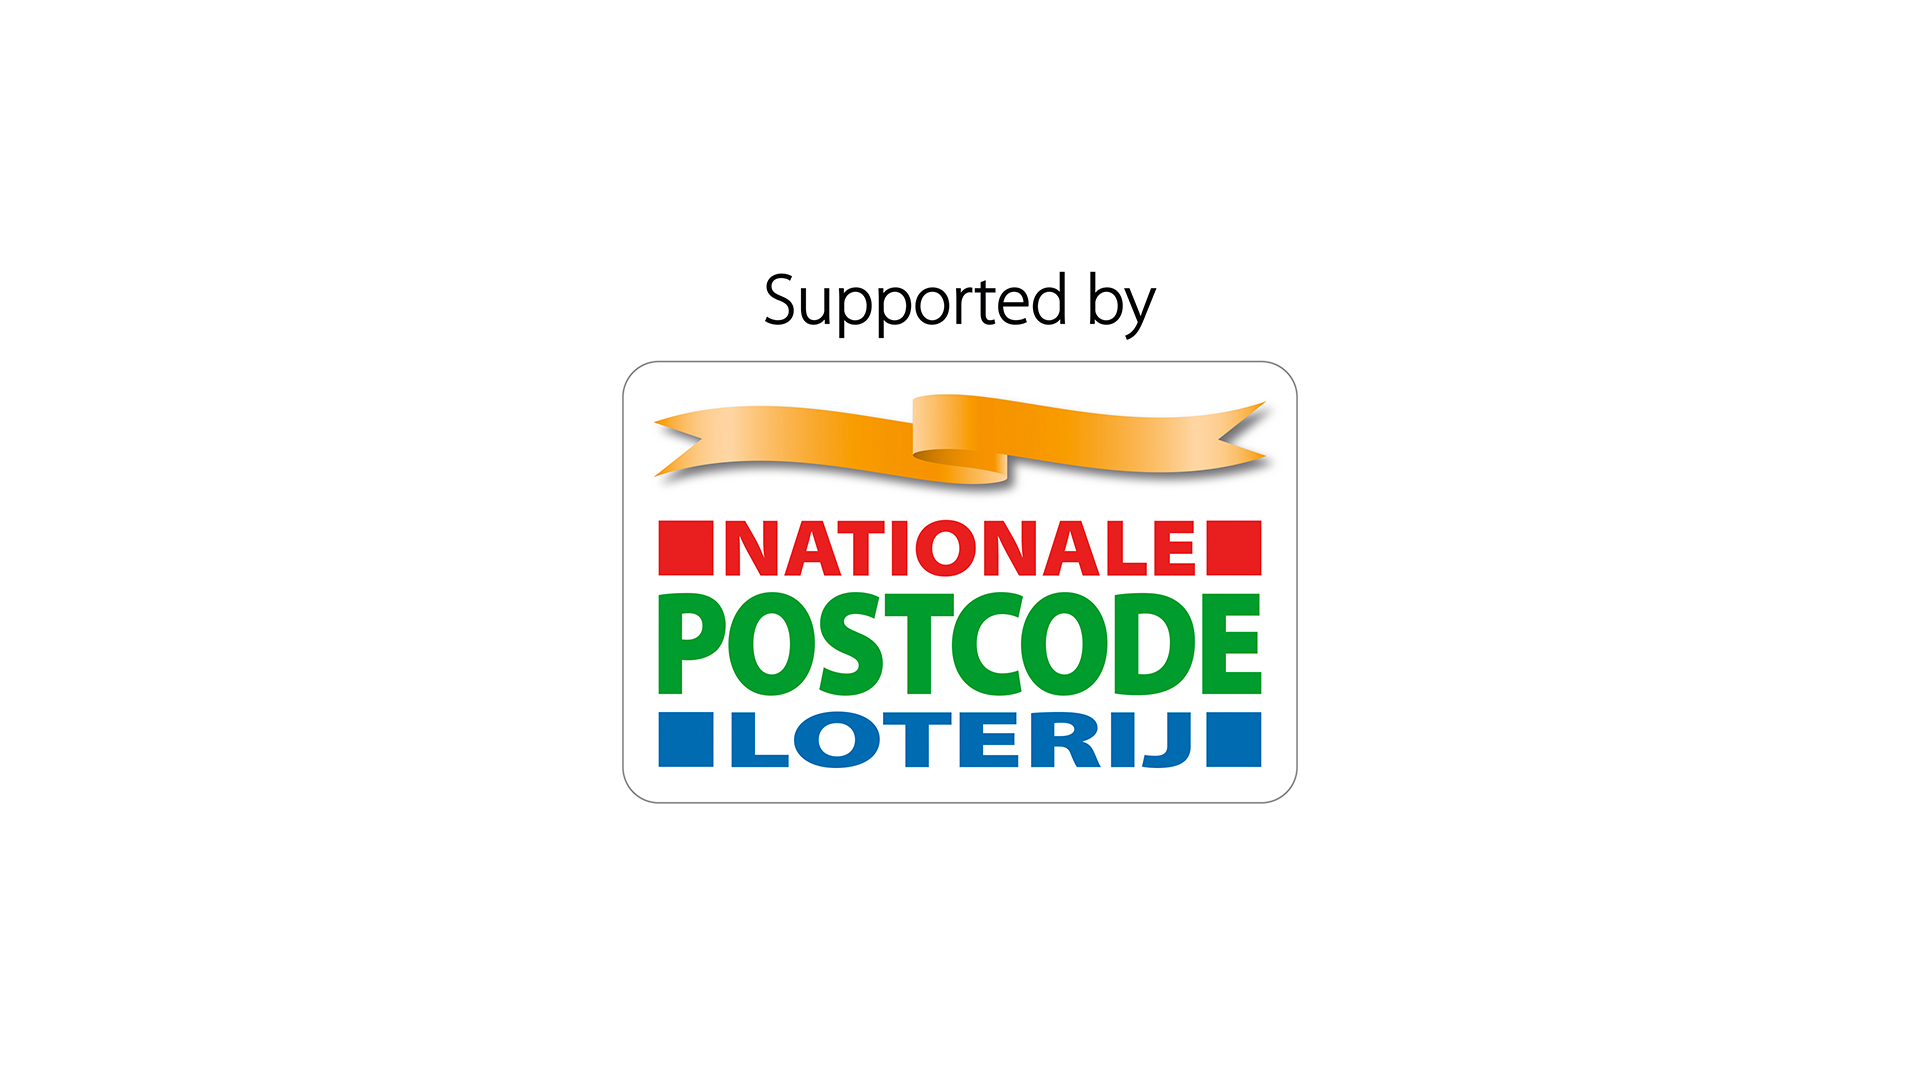 Supported by Dutch Postcode Lottery - Logo